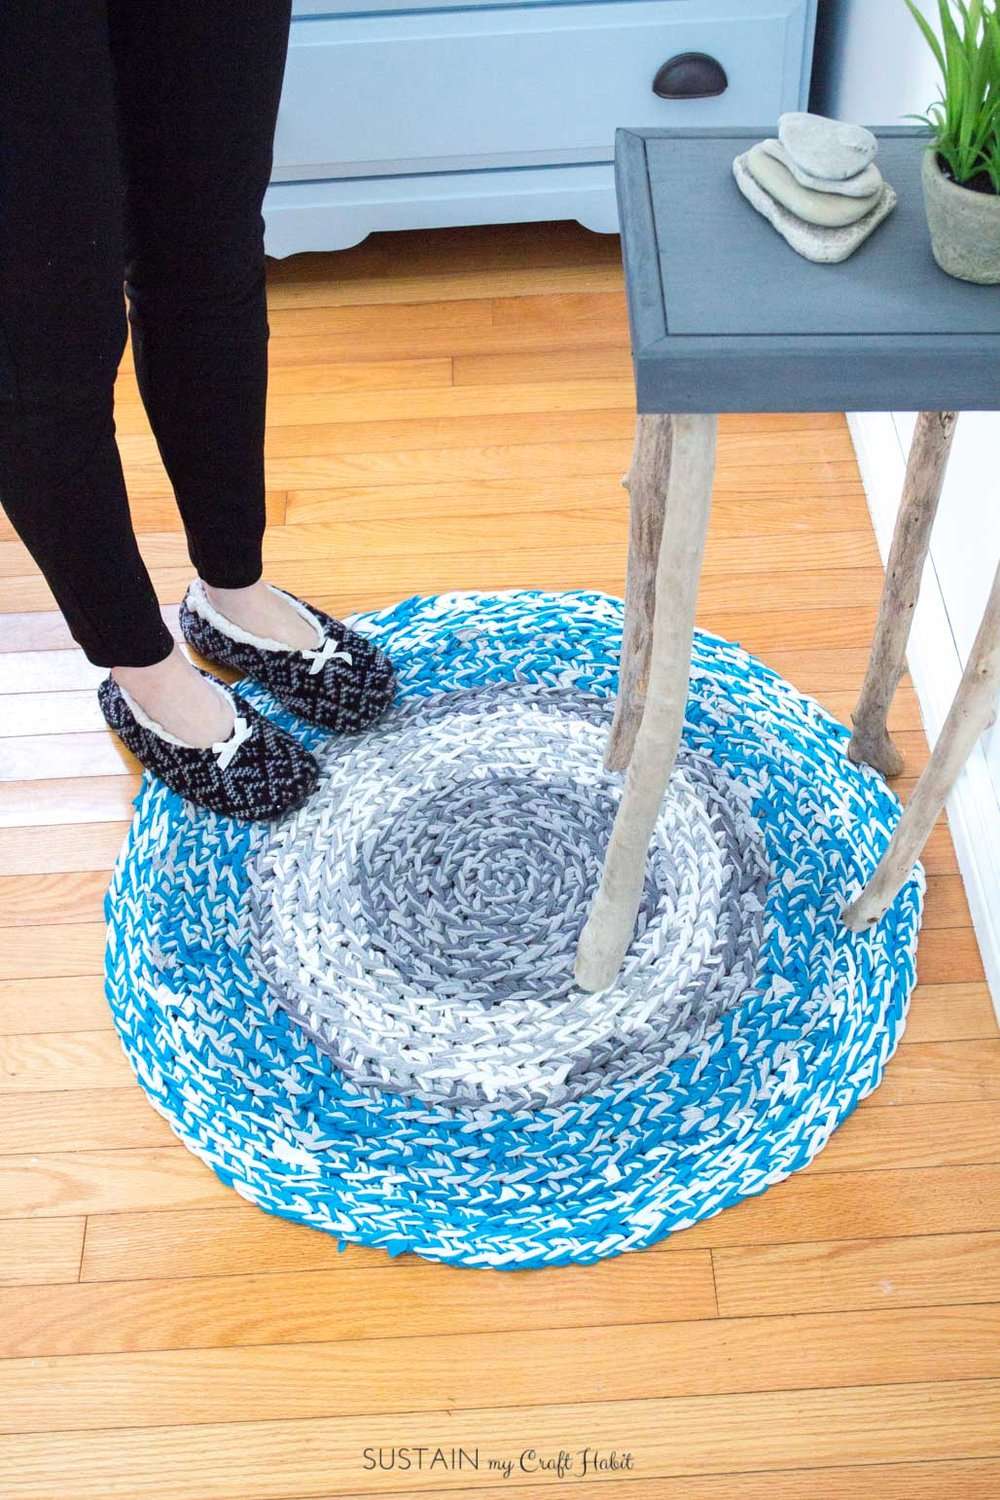 How to finger crochet a circular rag rug with T-shirt yarn | DIY video tutorial for beginners | Coastal style home decor idea